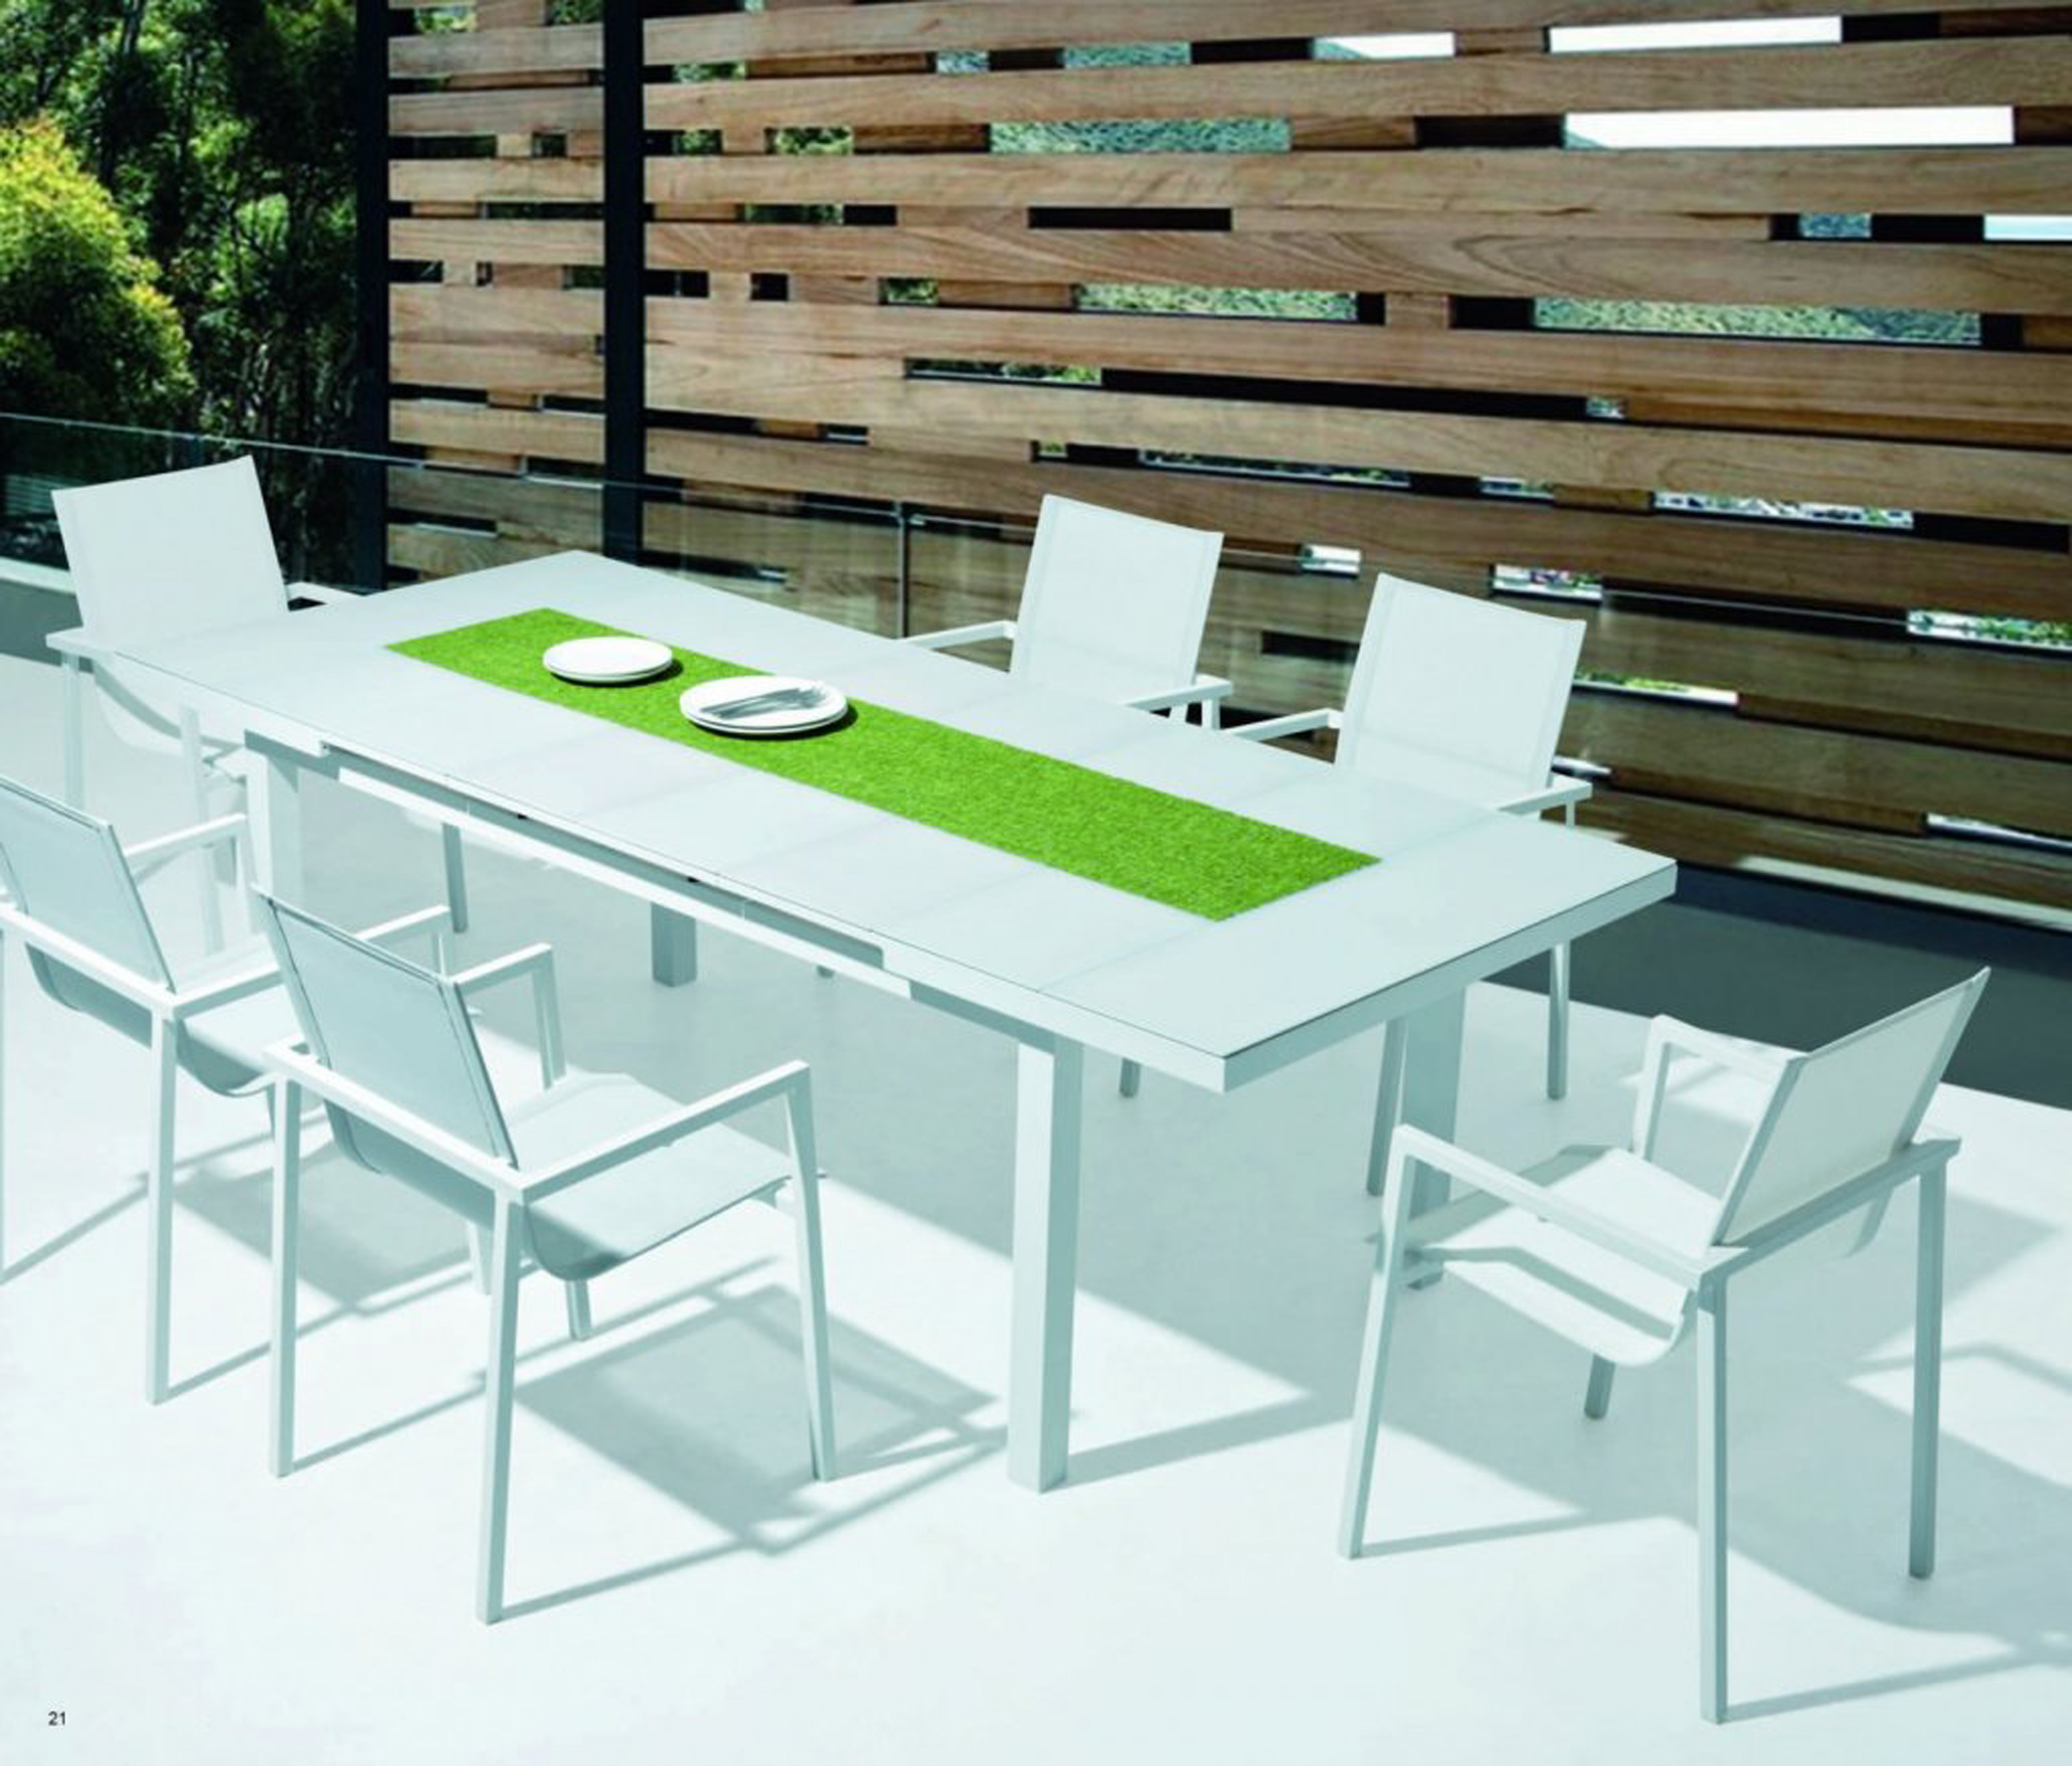 Lovely Outdoor Dining Set Idea With White Table With Pea Soup Tablecloth And White Chair Admirable Outdoor Dining Set Ideas (View 17 of 20)